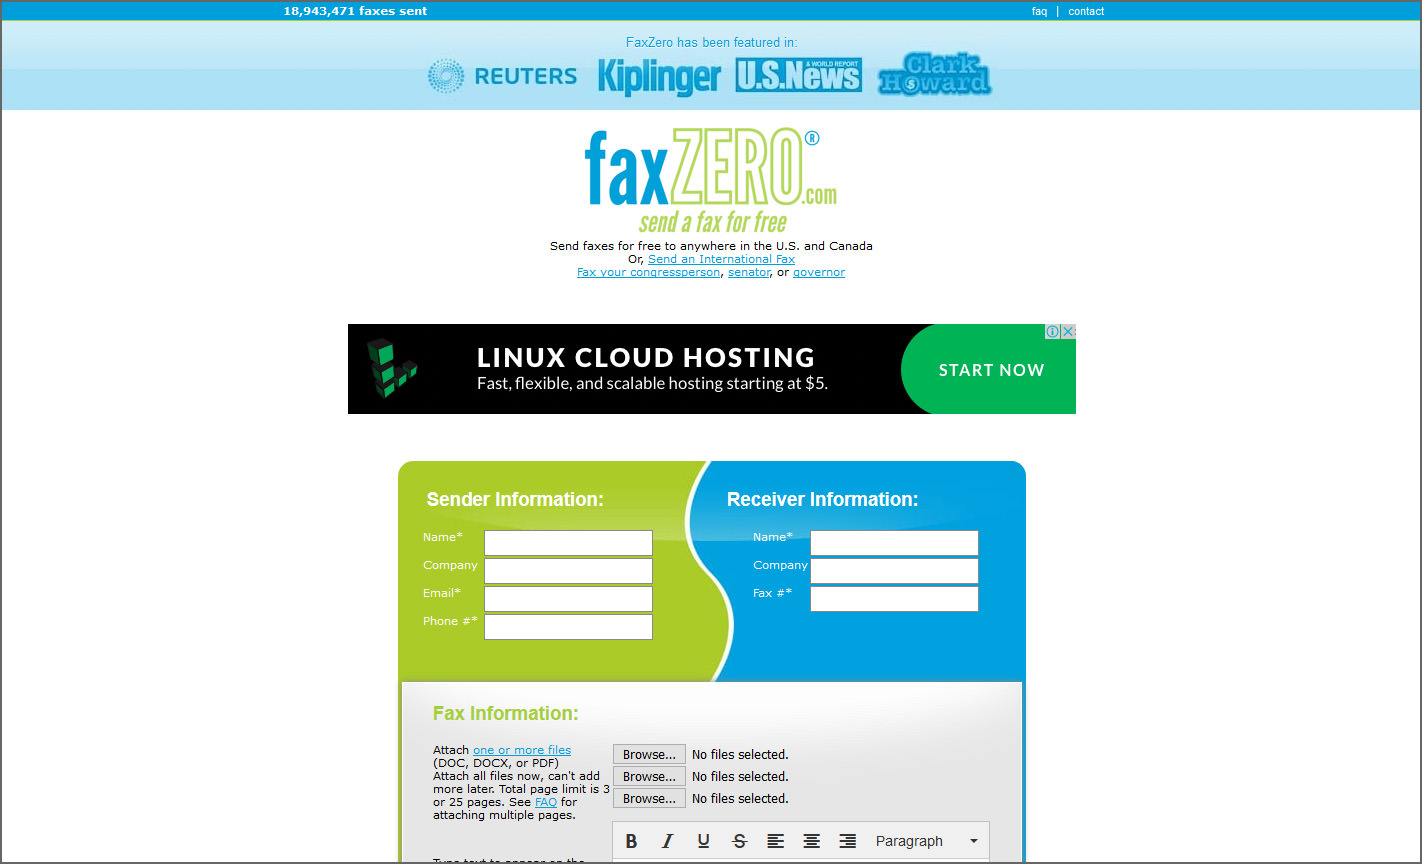 6 FREE Online Fax Services, No Credit Card Verification Required